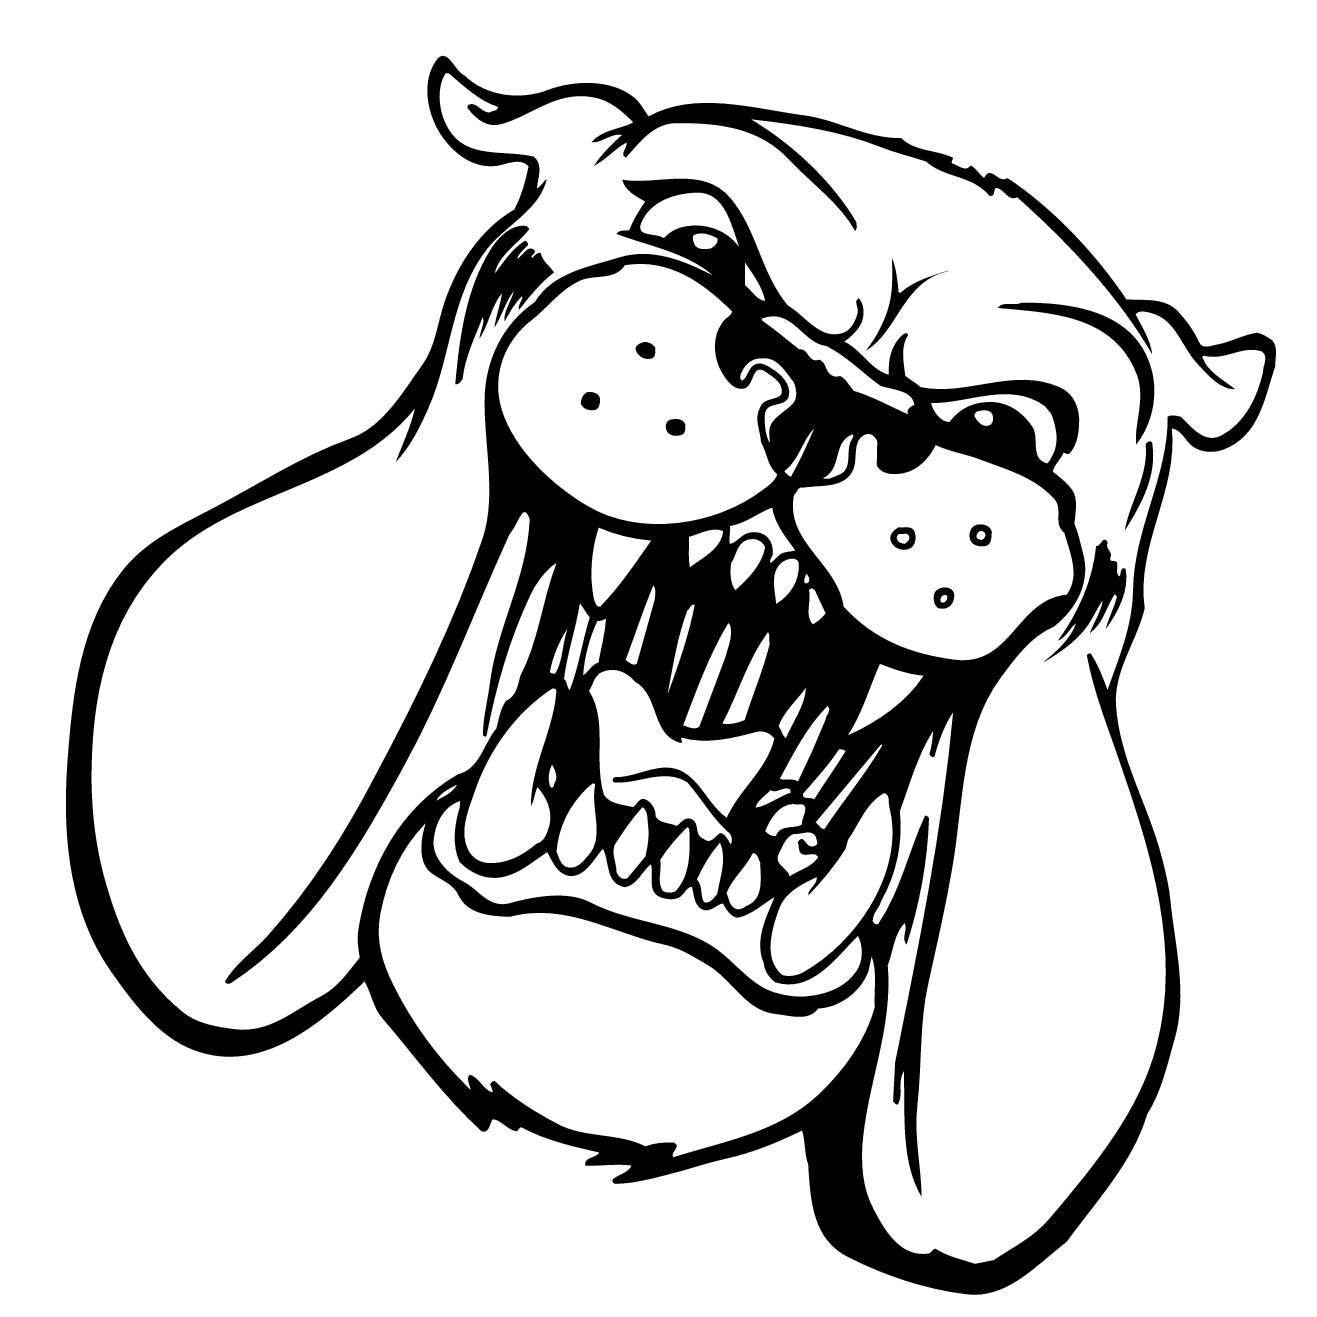 1317x1317 Bulldog Clipart Superhero